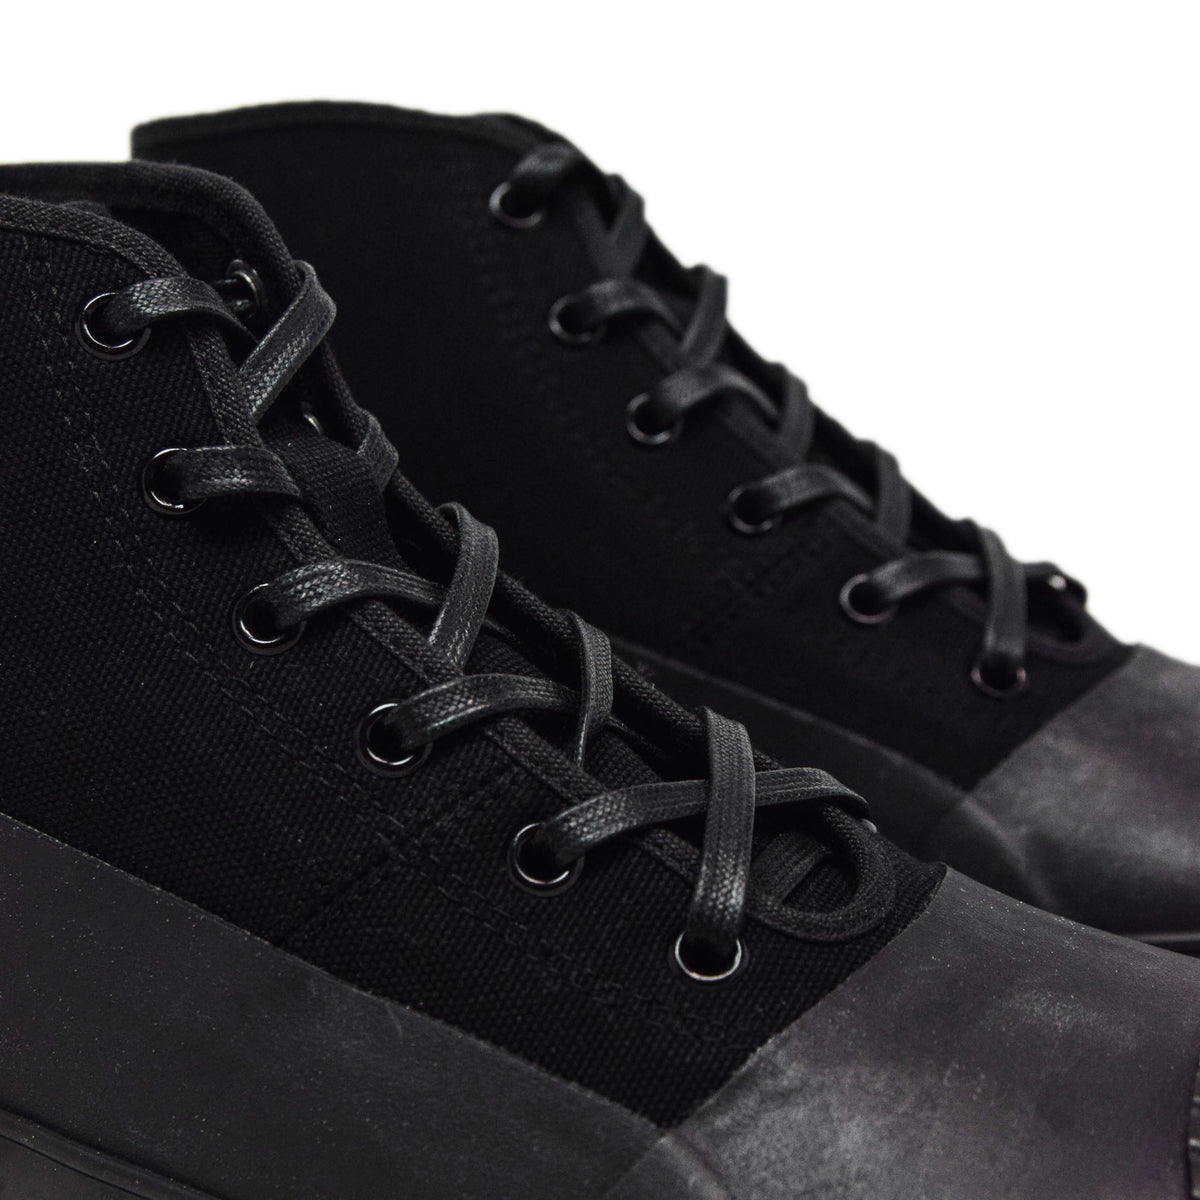 Moonstar Vulcanised Alweather Boot Black Made In Japan LACES